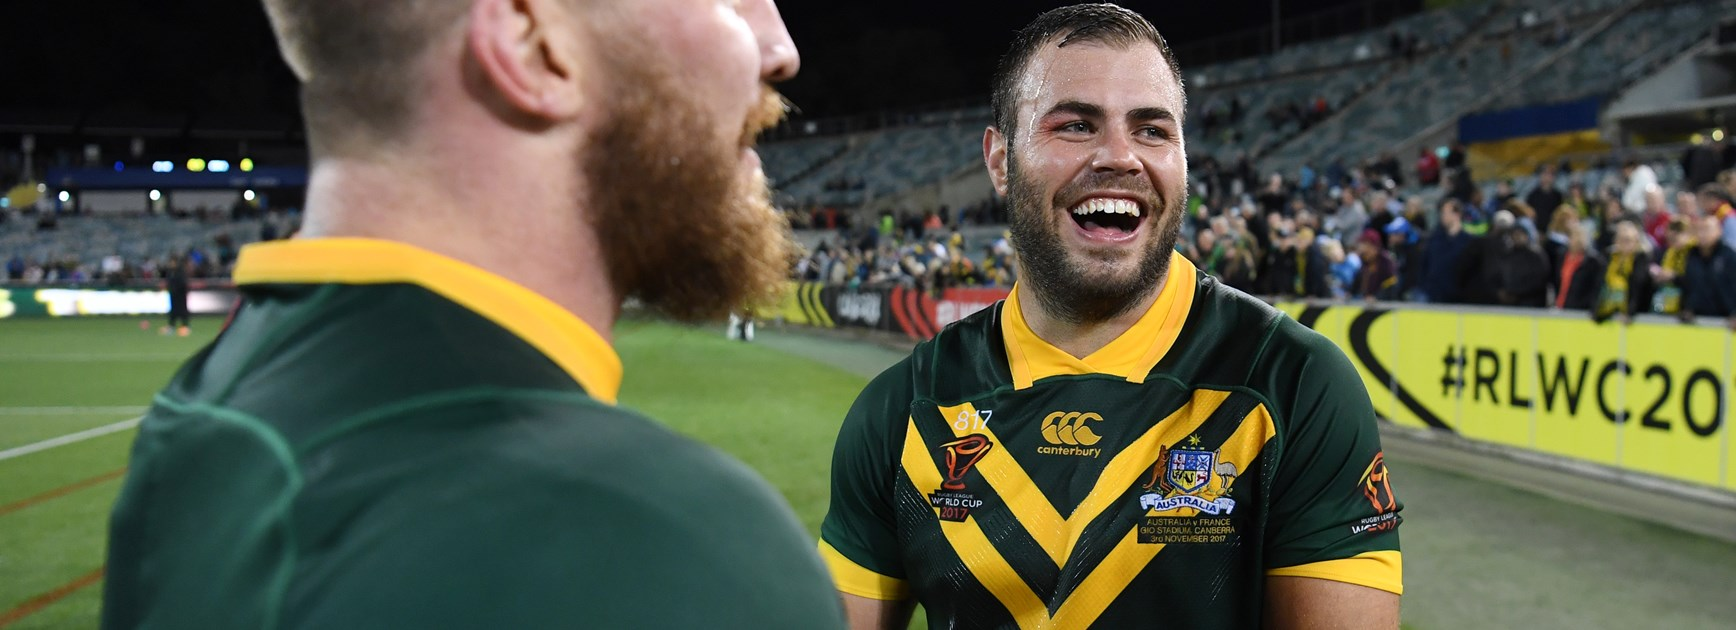 PM's XIII squads announced: Graham, Brown to lead youthful sides